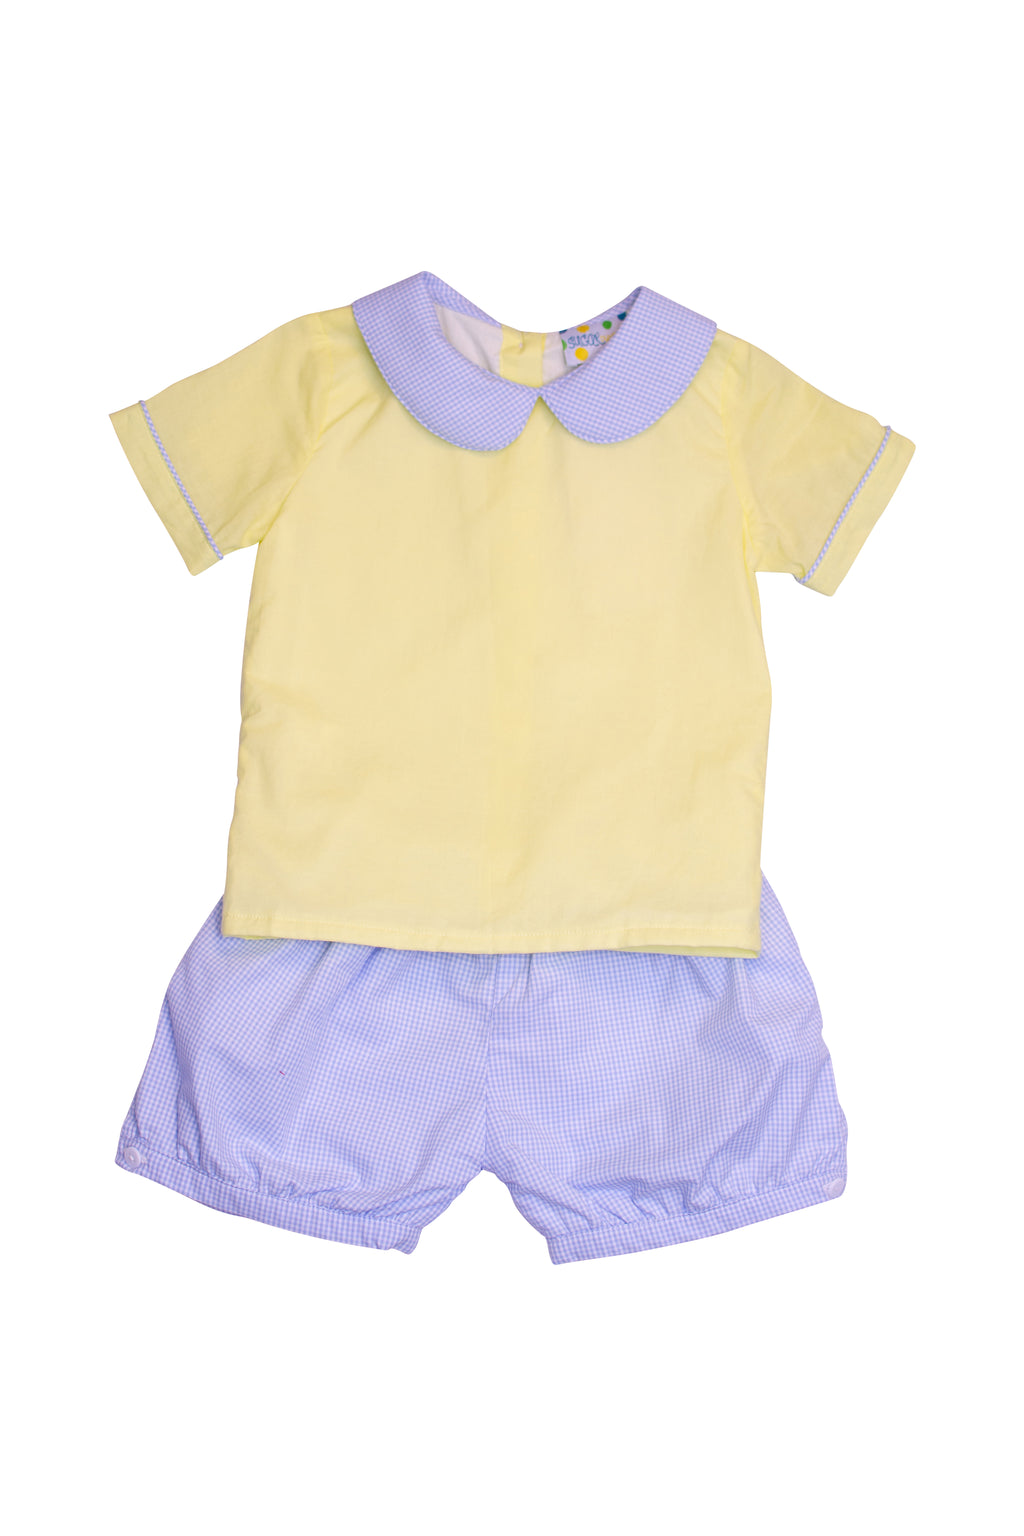 Boys Yellow/Blue Banded Shorts Set